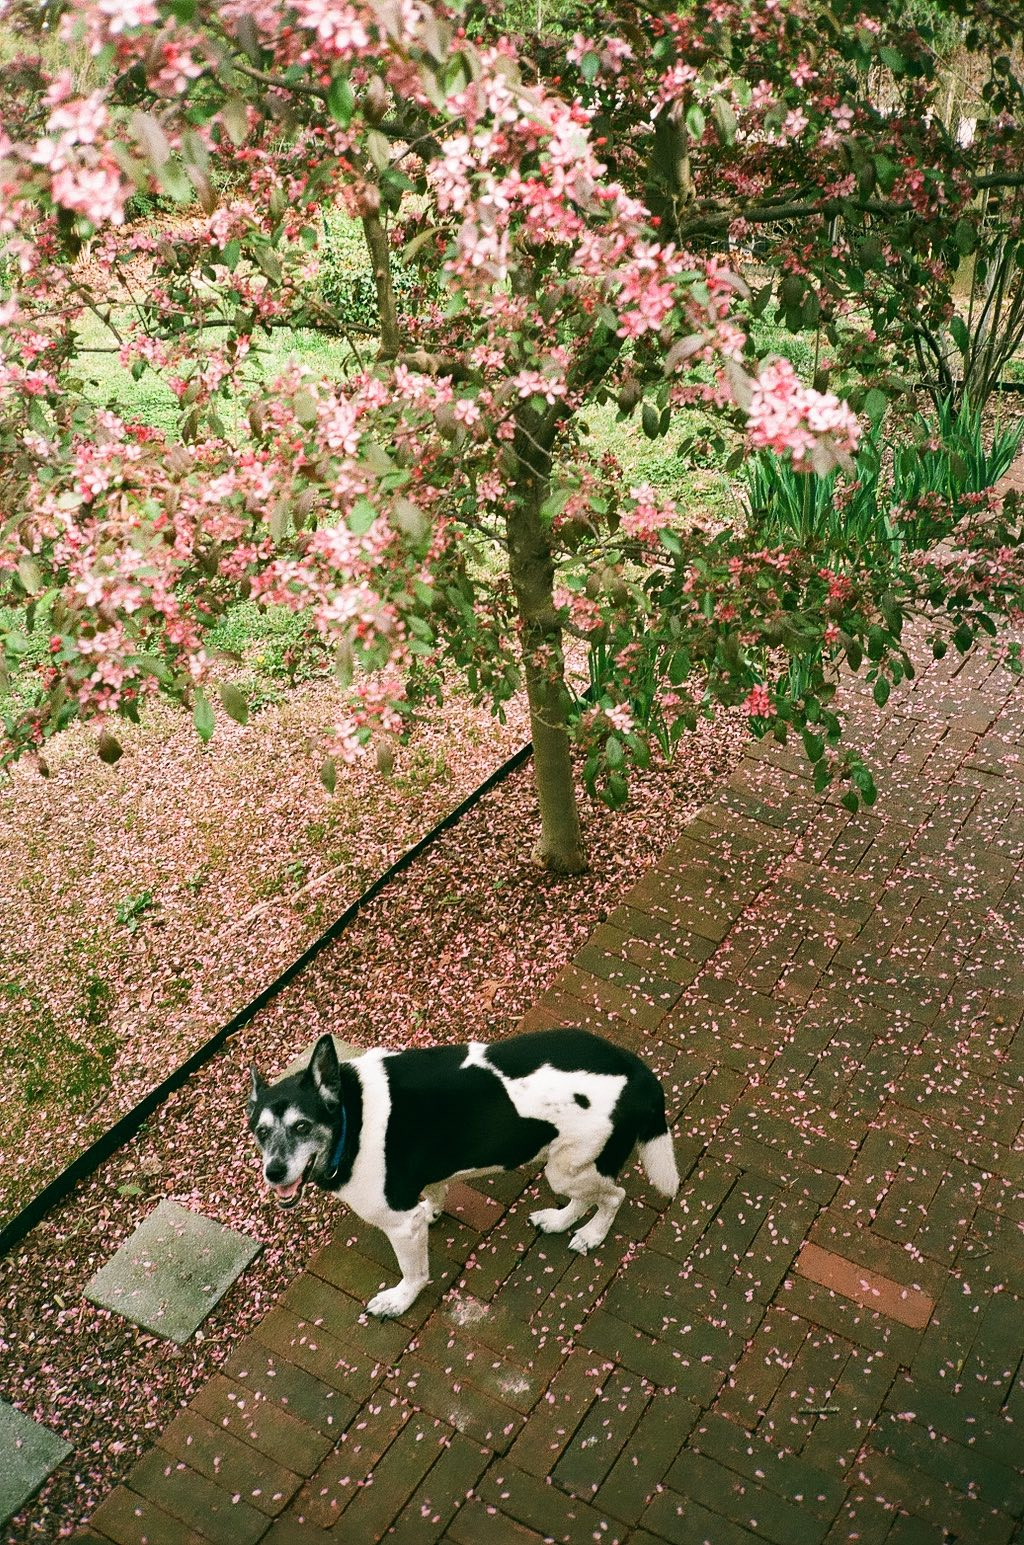 35mm film photography Dodge under the Pink Crabapple Tree